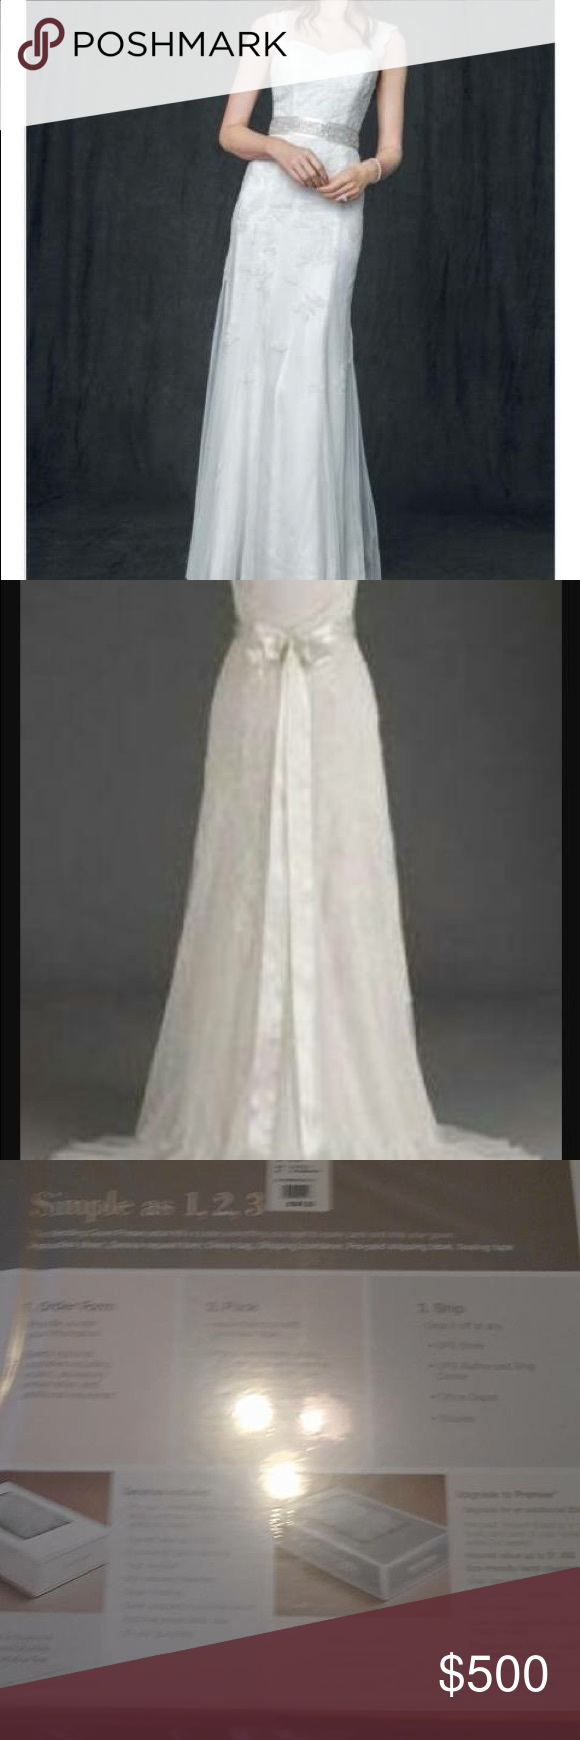 Wedding dress preservation kit  Wedding dress Never been worn Size  Ivory gown with cap sleeves